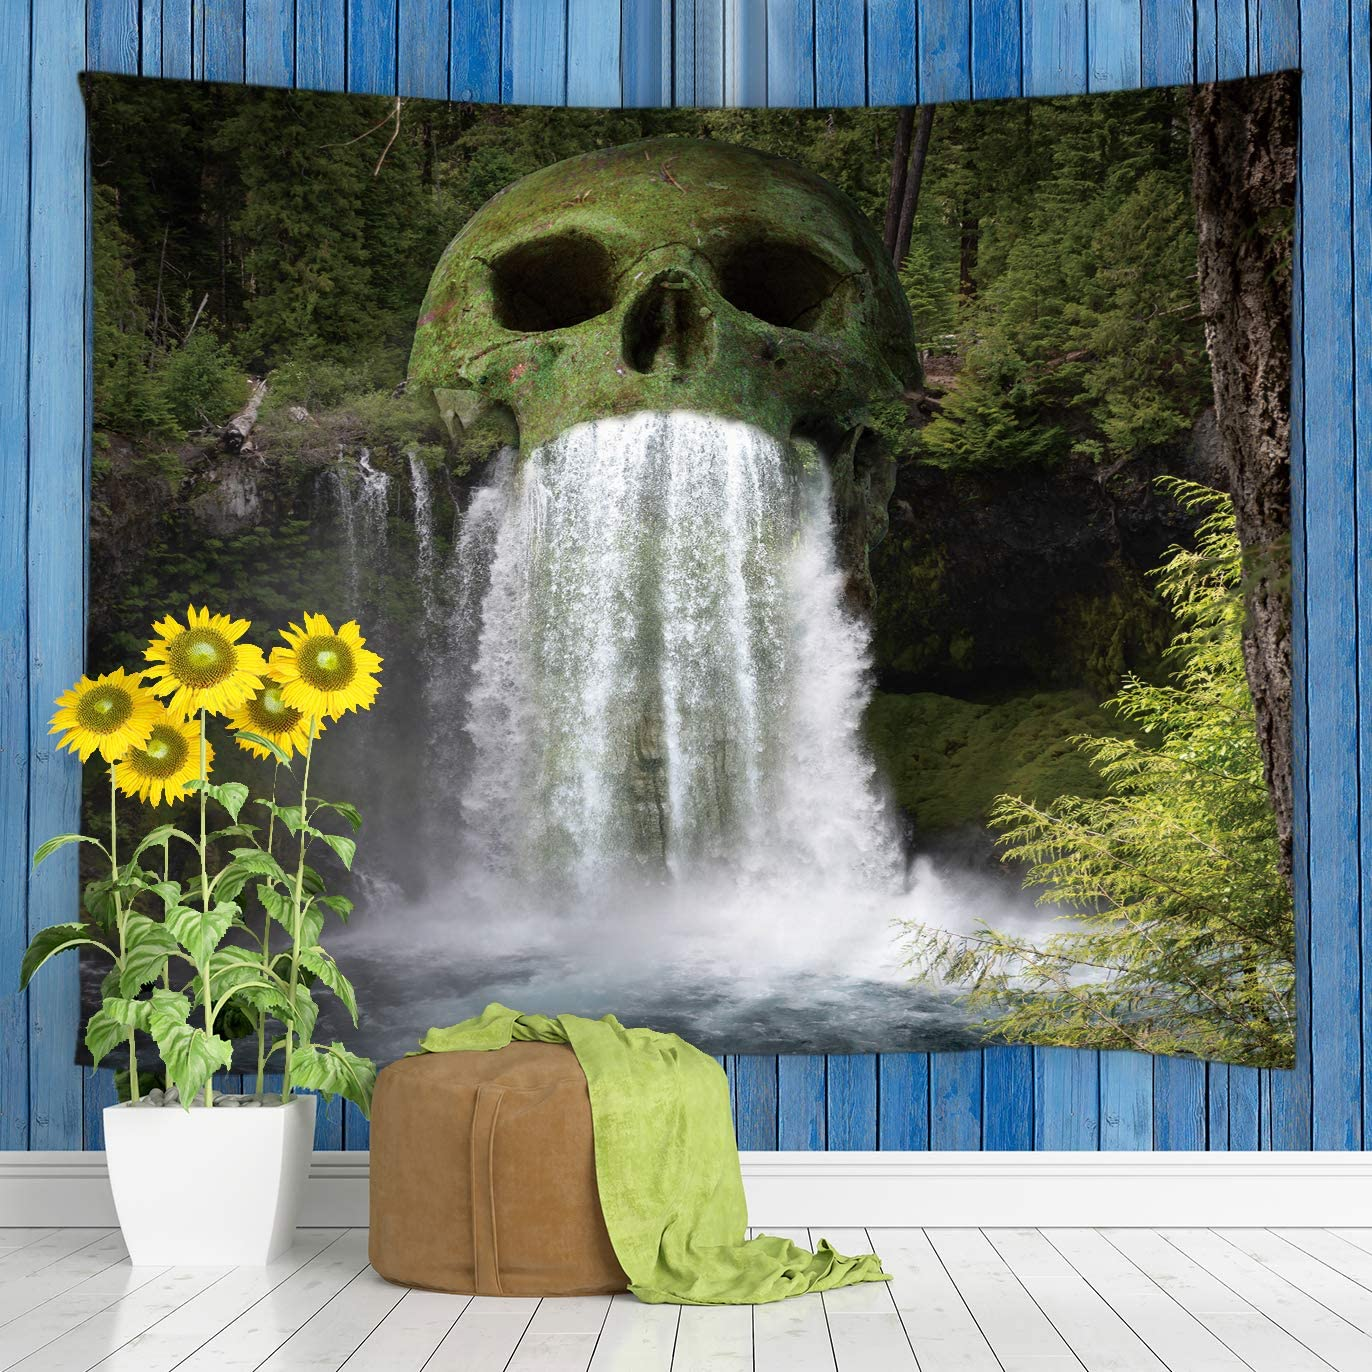 jingjiji Skull Mountain Tapestry Waterfall Scenic Natural Lake Water Lush Branches Horror Forest Tropical Island Exotic Wall Hanging Tapestries Bedroom Living Room Polyester Fabric 90 x 71 Inch Green